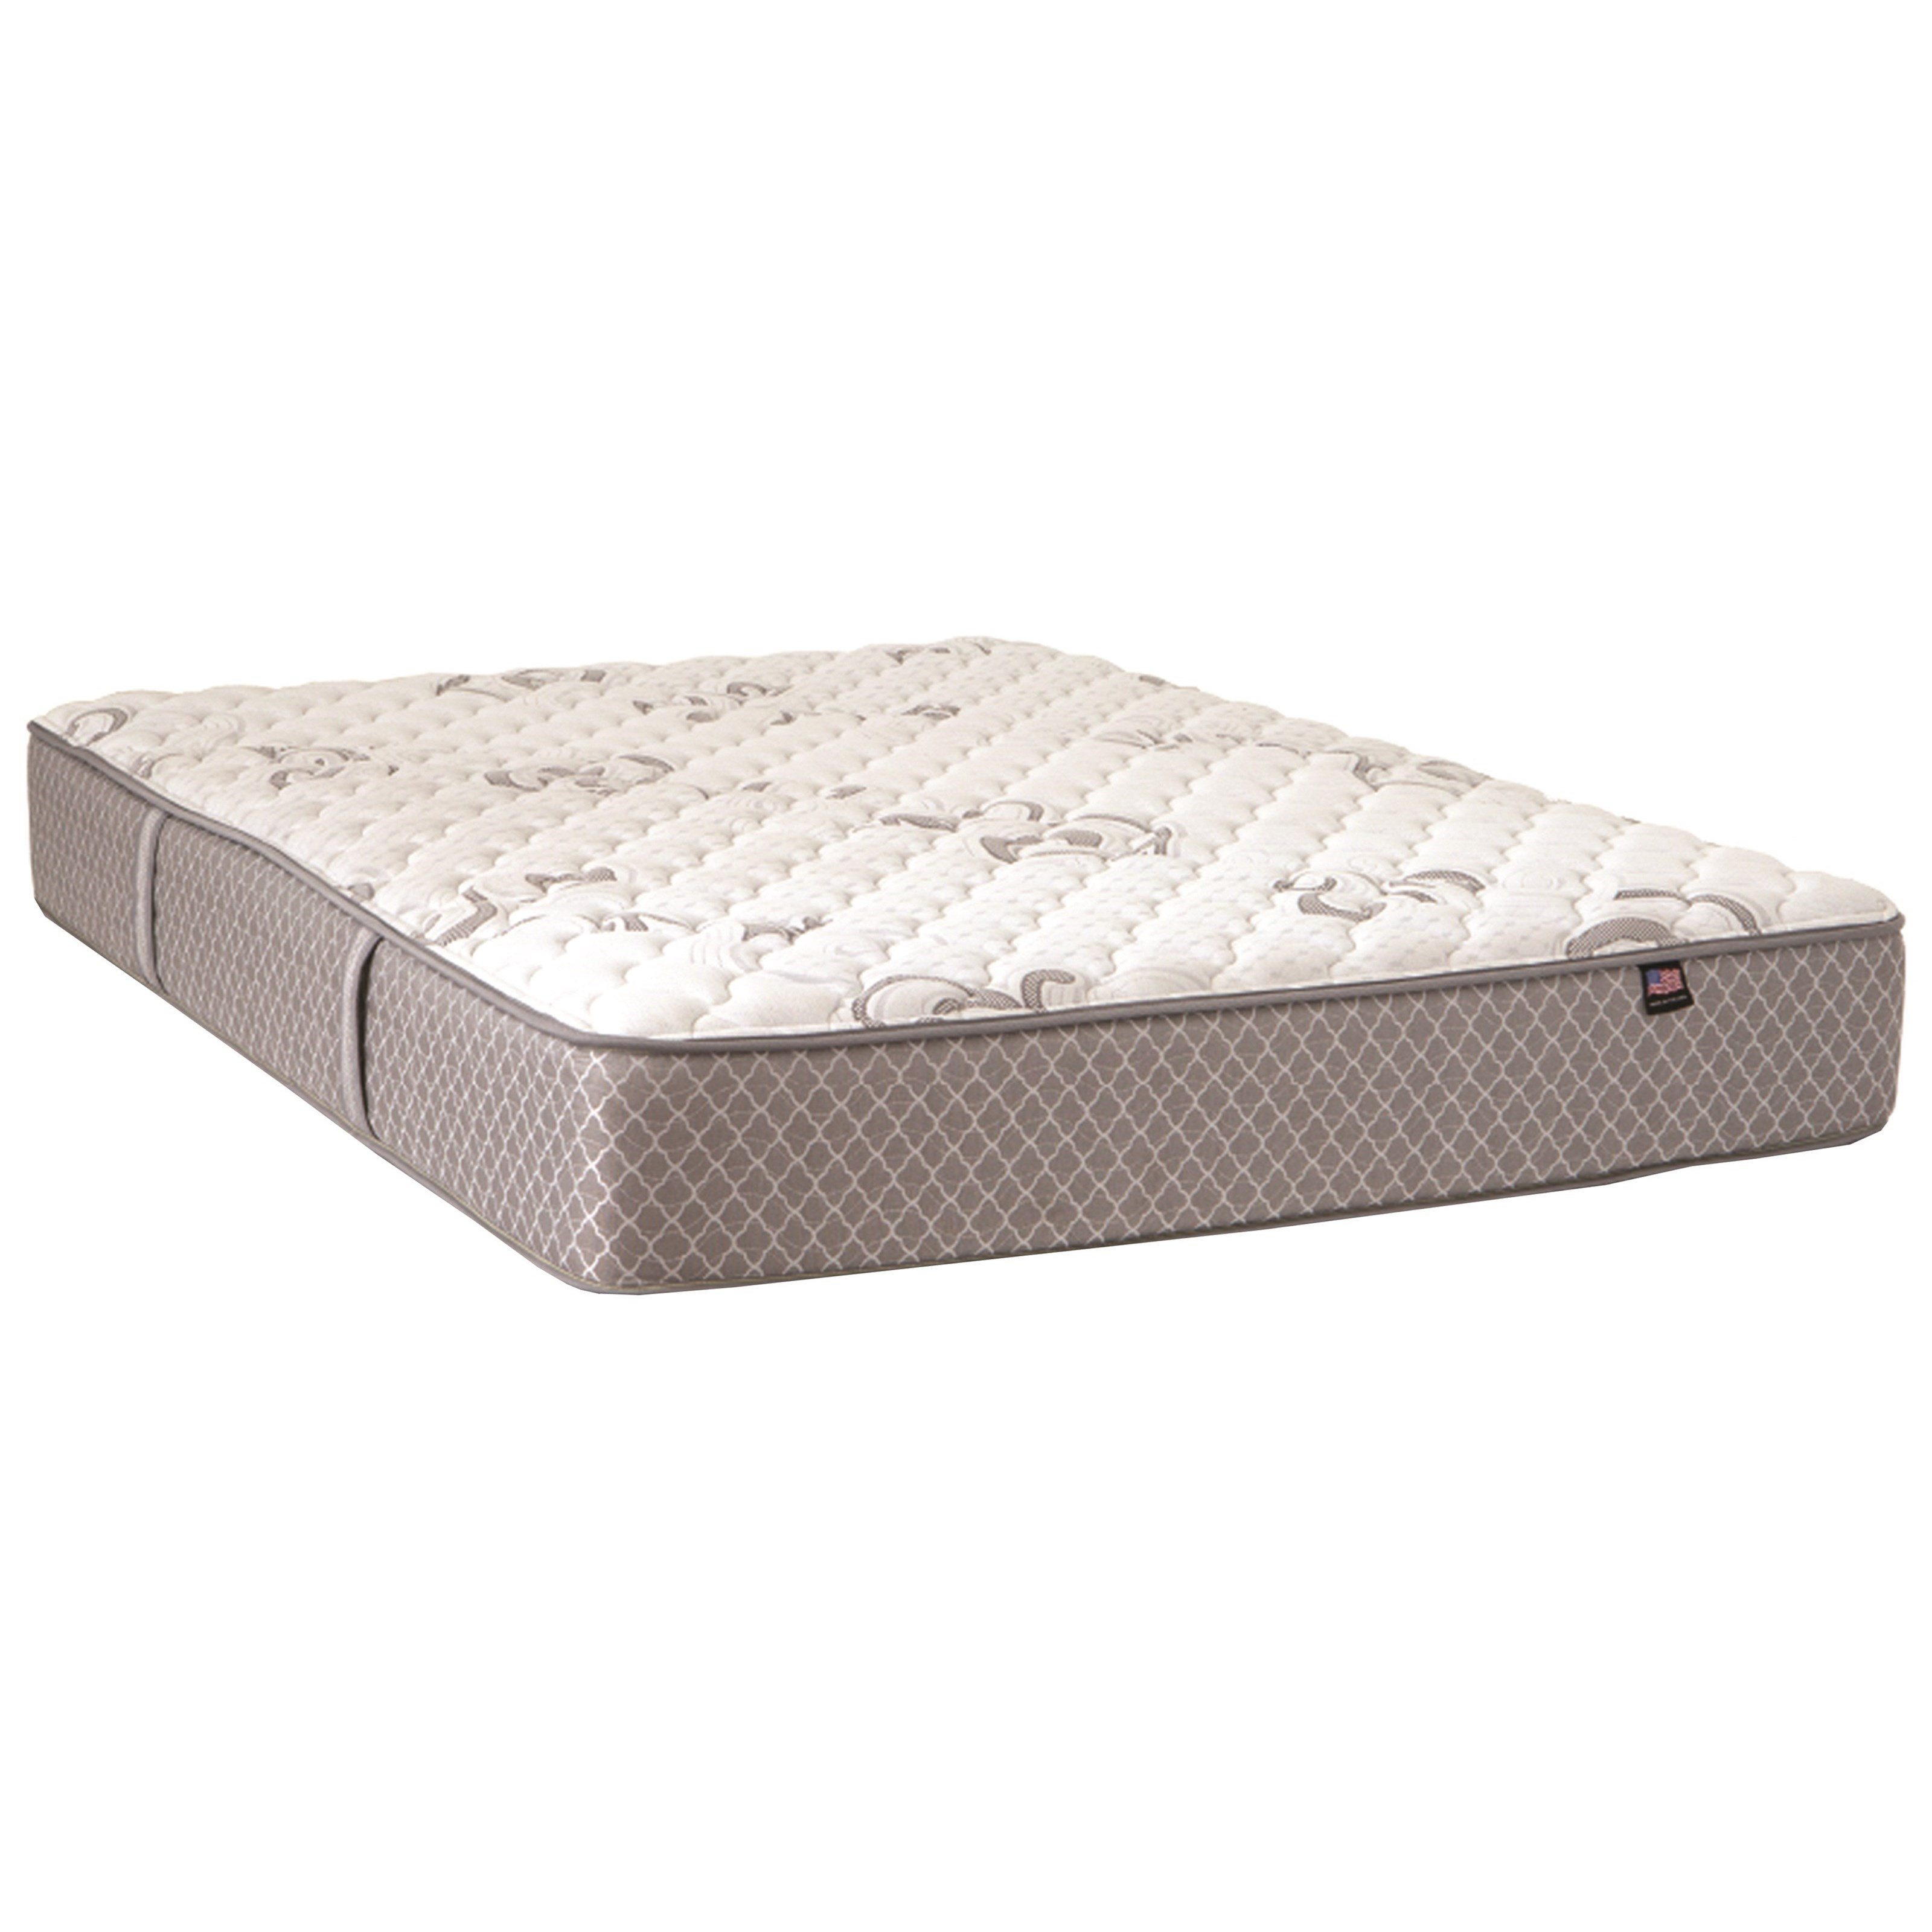 Broadway Firm Full Firm Mattress by Therapedic at Darvin Furniture